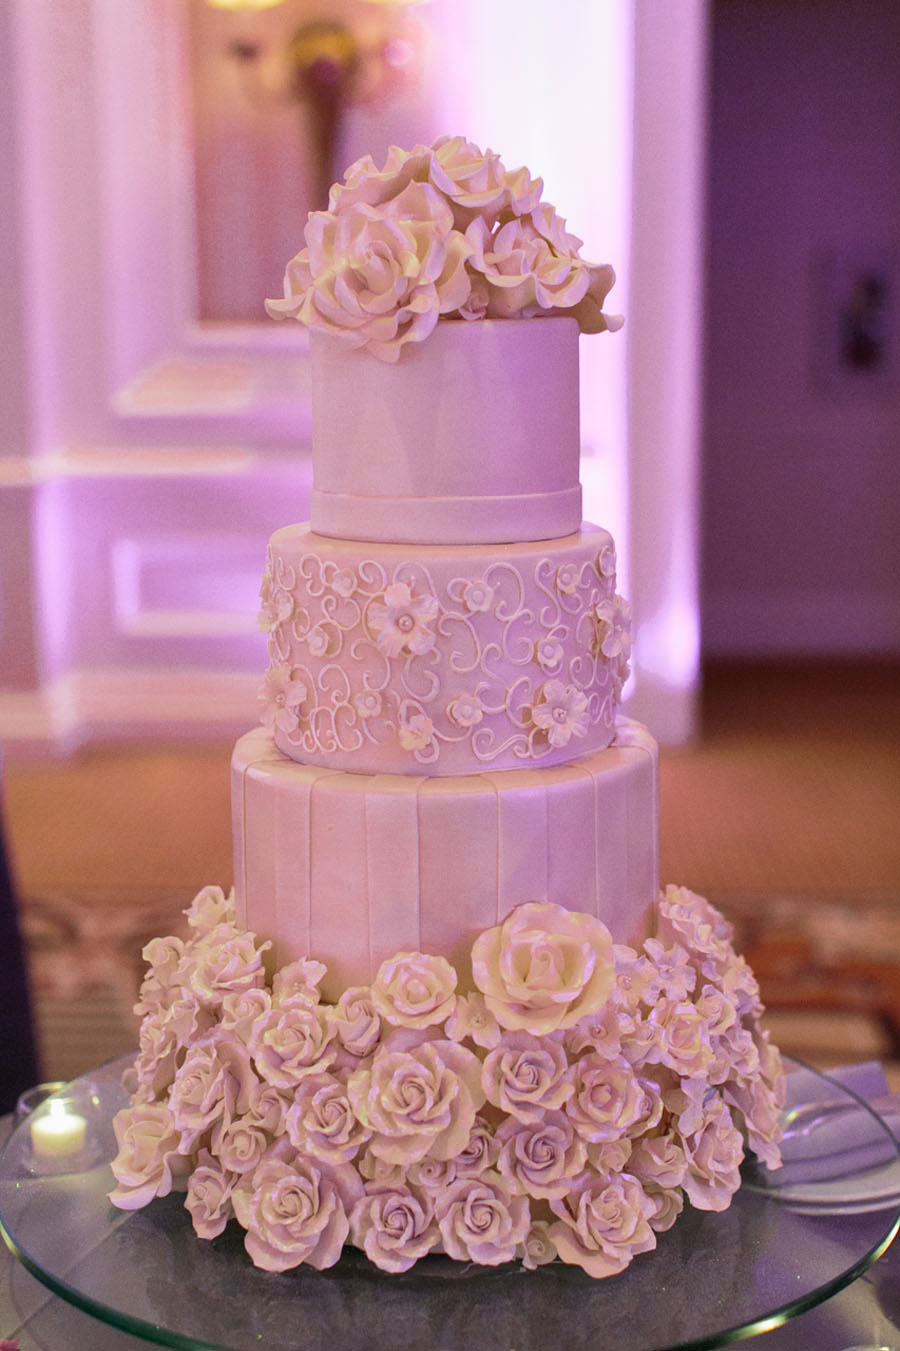 Four Tier Wedding Cake decorated with hand crafted, iridescent sugar flowers.  Katherine & Jared - Wedding at the Acacia Ballroom at the Four Seasons Las Vegas.   Las Vegas Wedding Planner Andrea Eppolito.  Wedding at Four Seasons.  Photography by Meg Ruth.  Floral and Decor by Naakiti Floral.